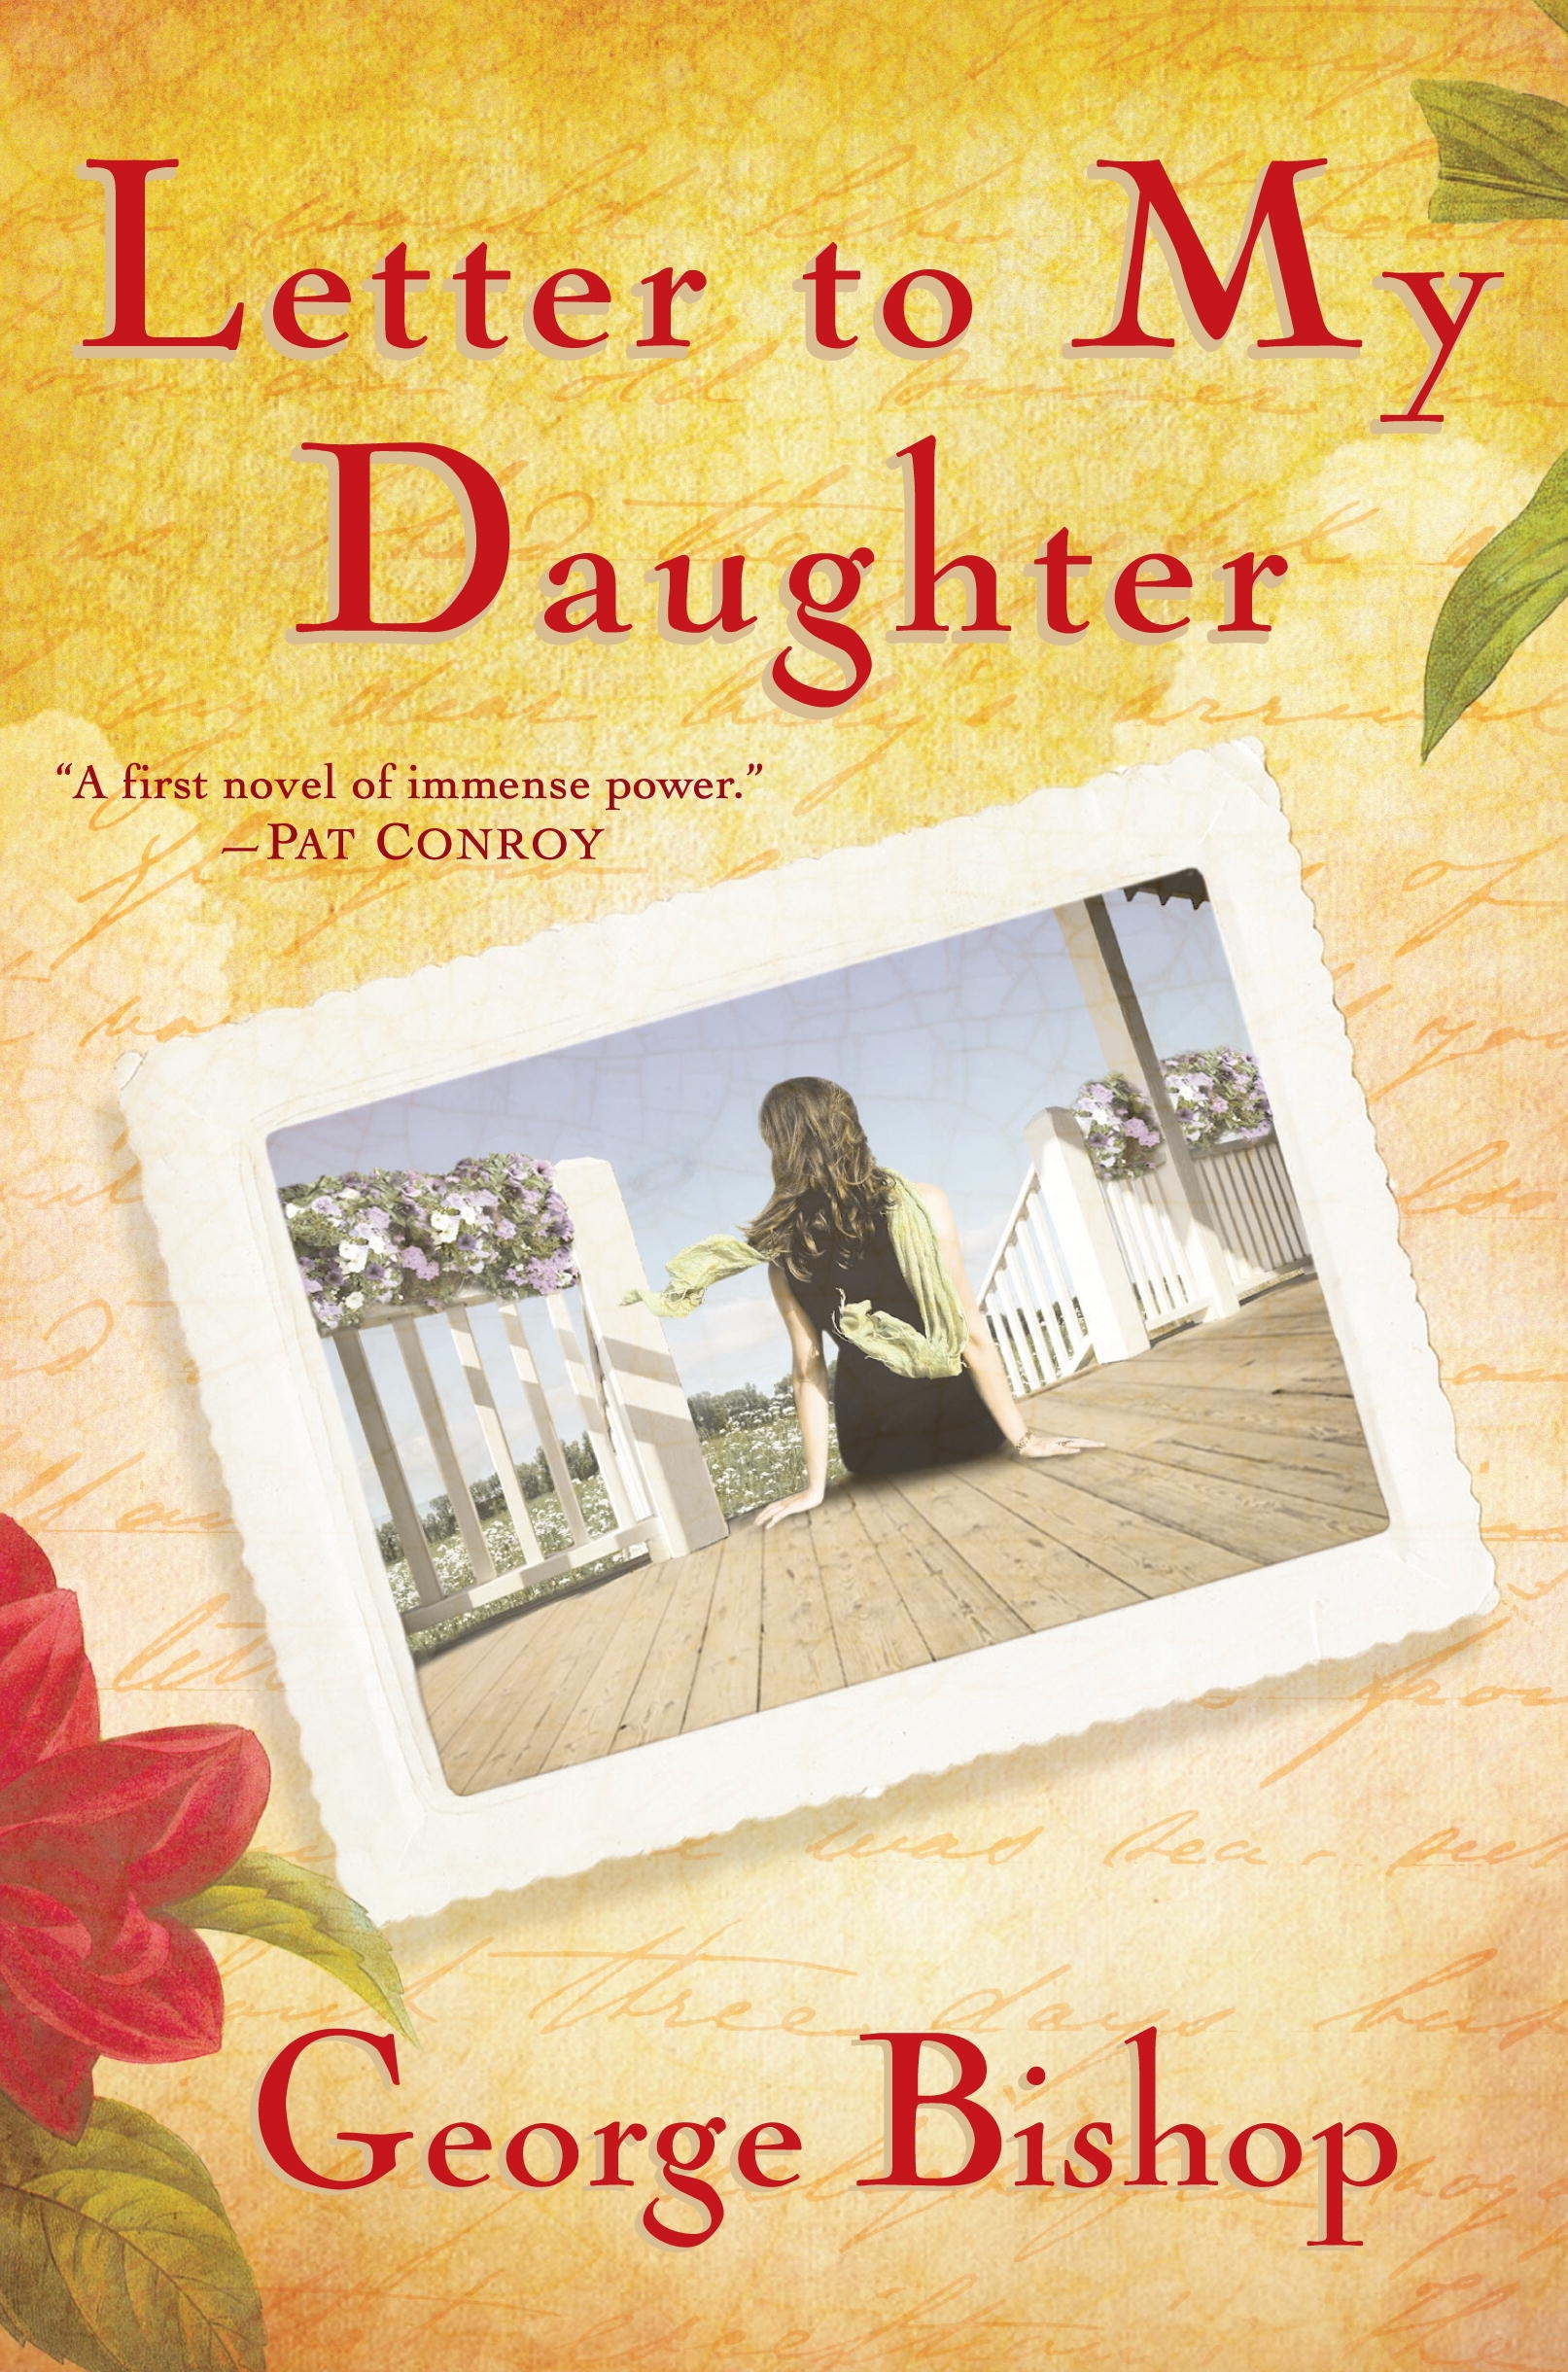 Letter To My Daughter Ebook Promo!